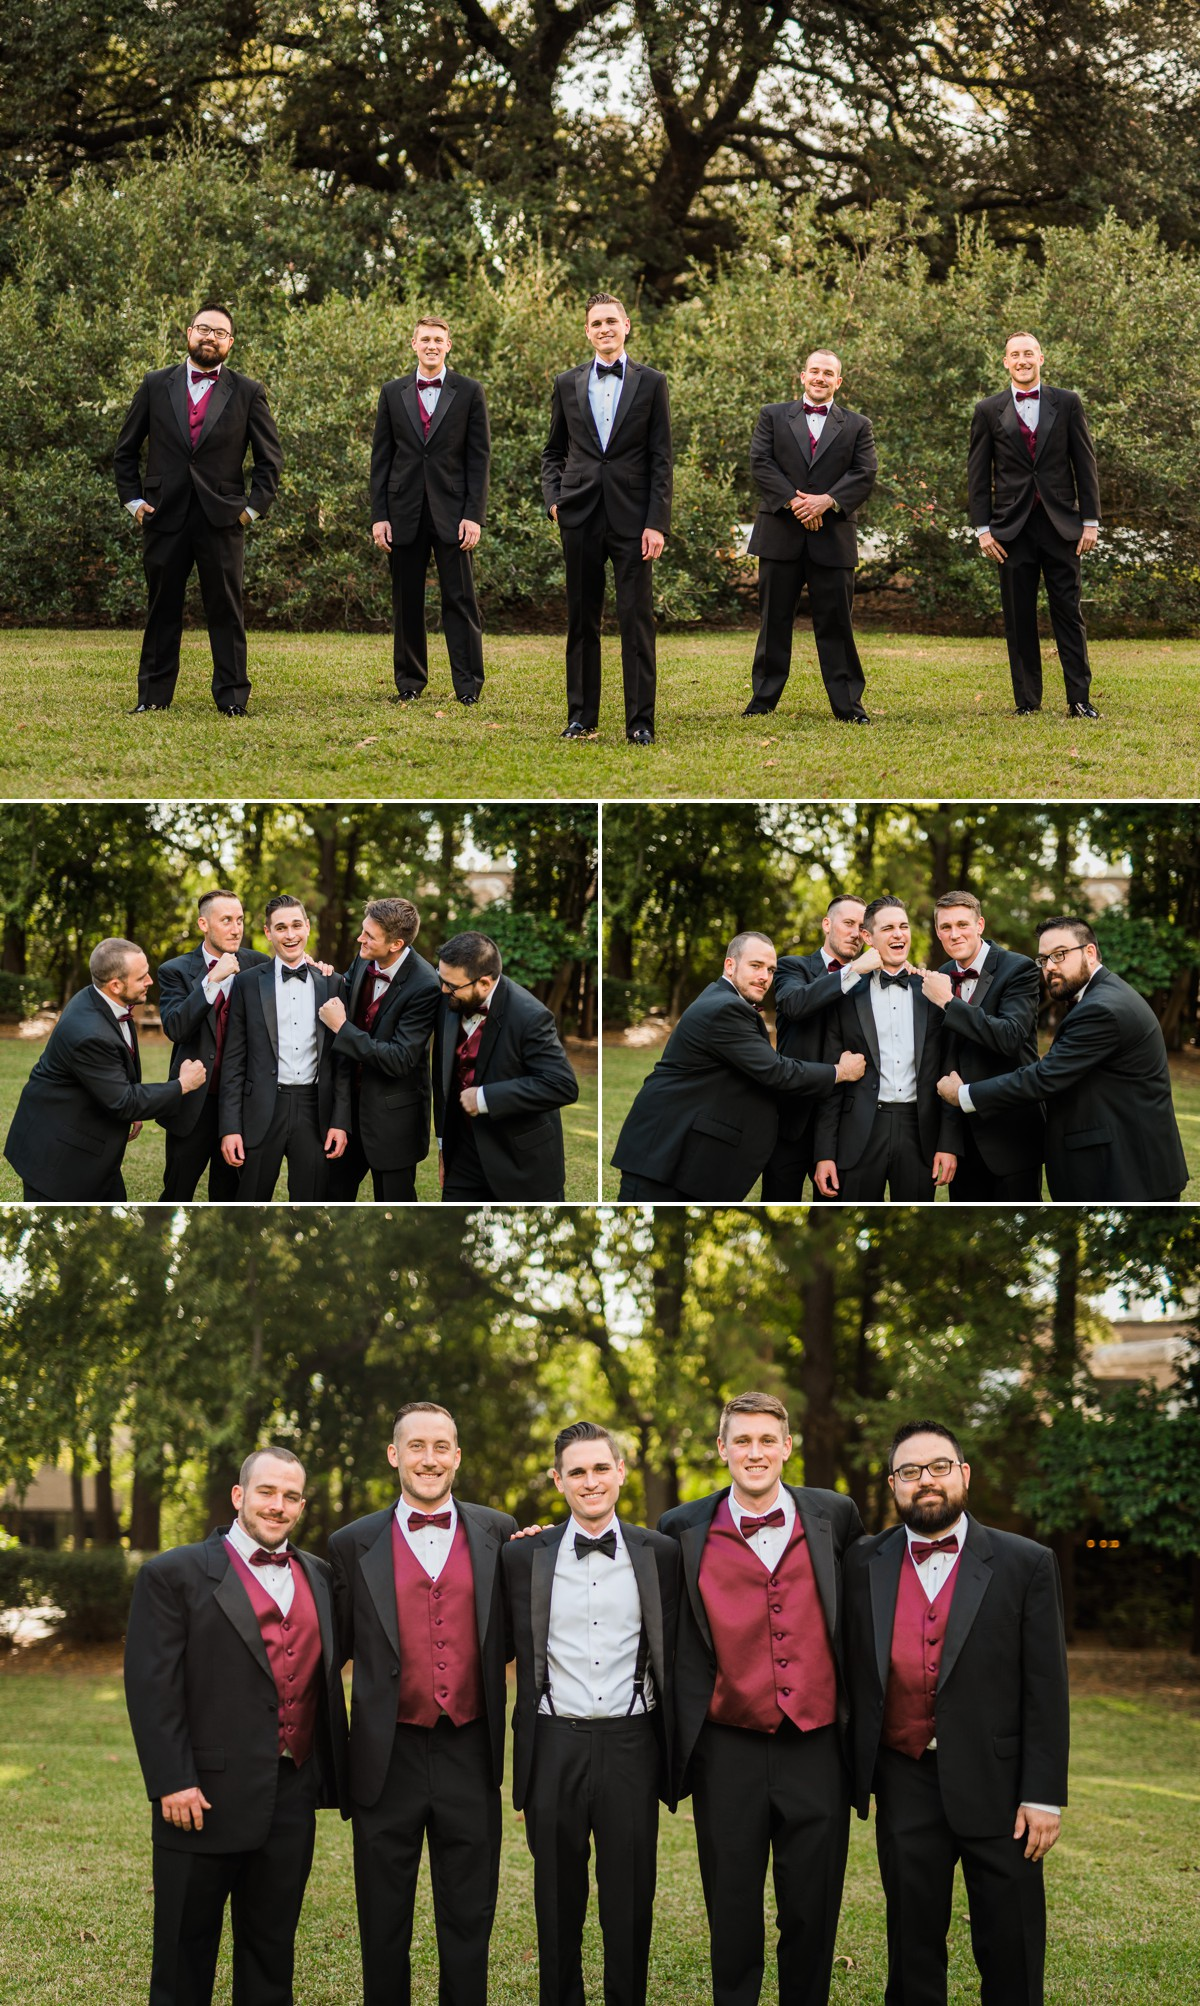 Manor House Wedding at The Houstonian Hotel Groomsman outdoors